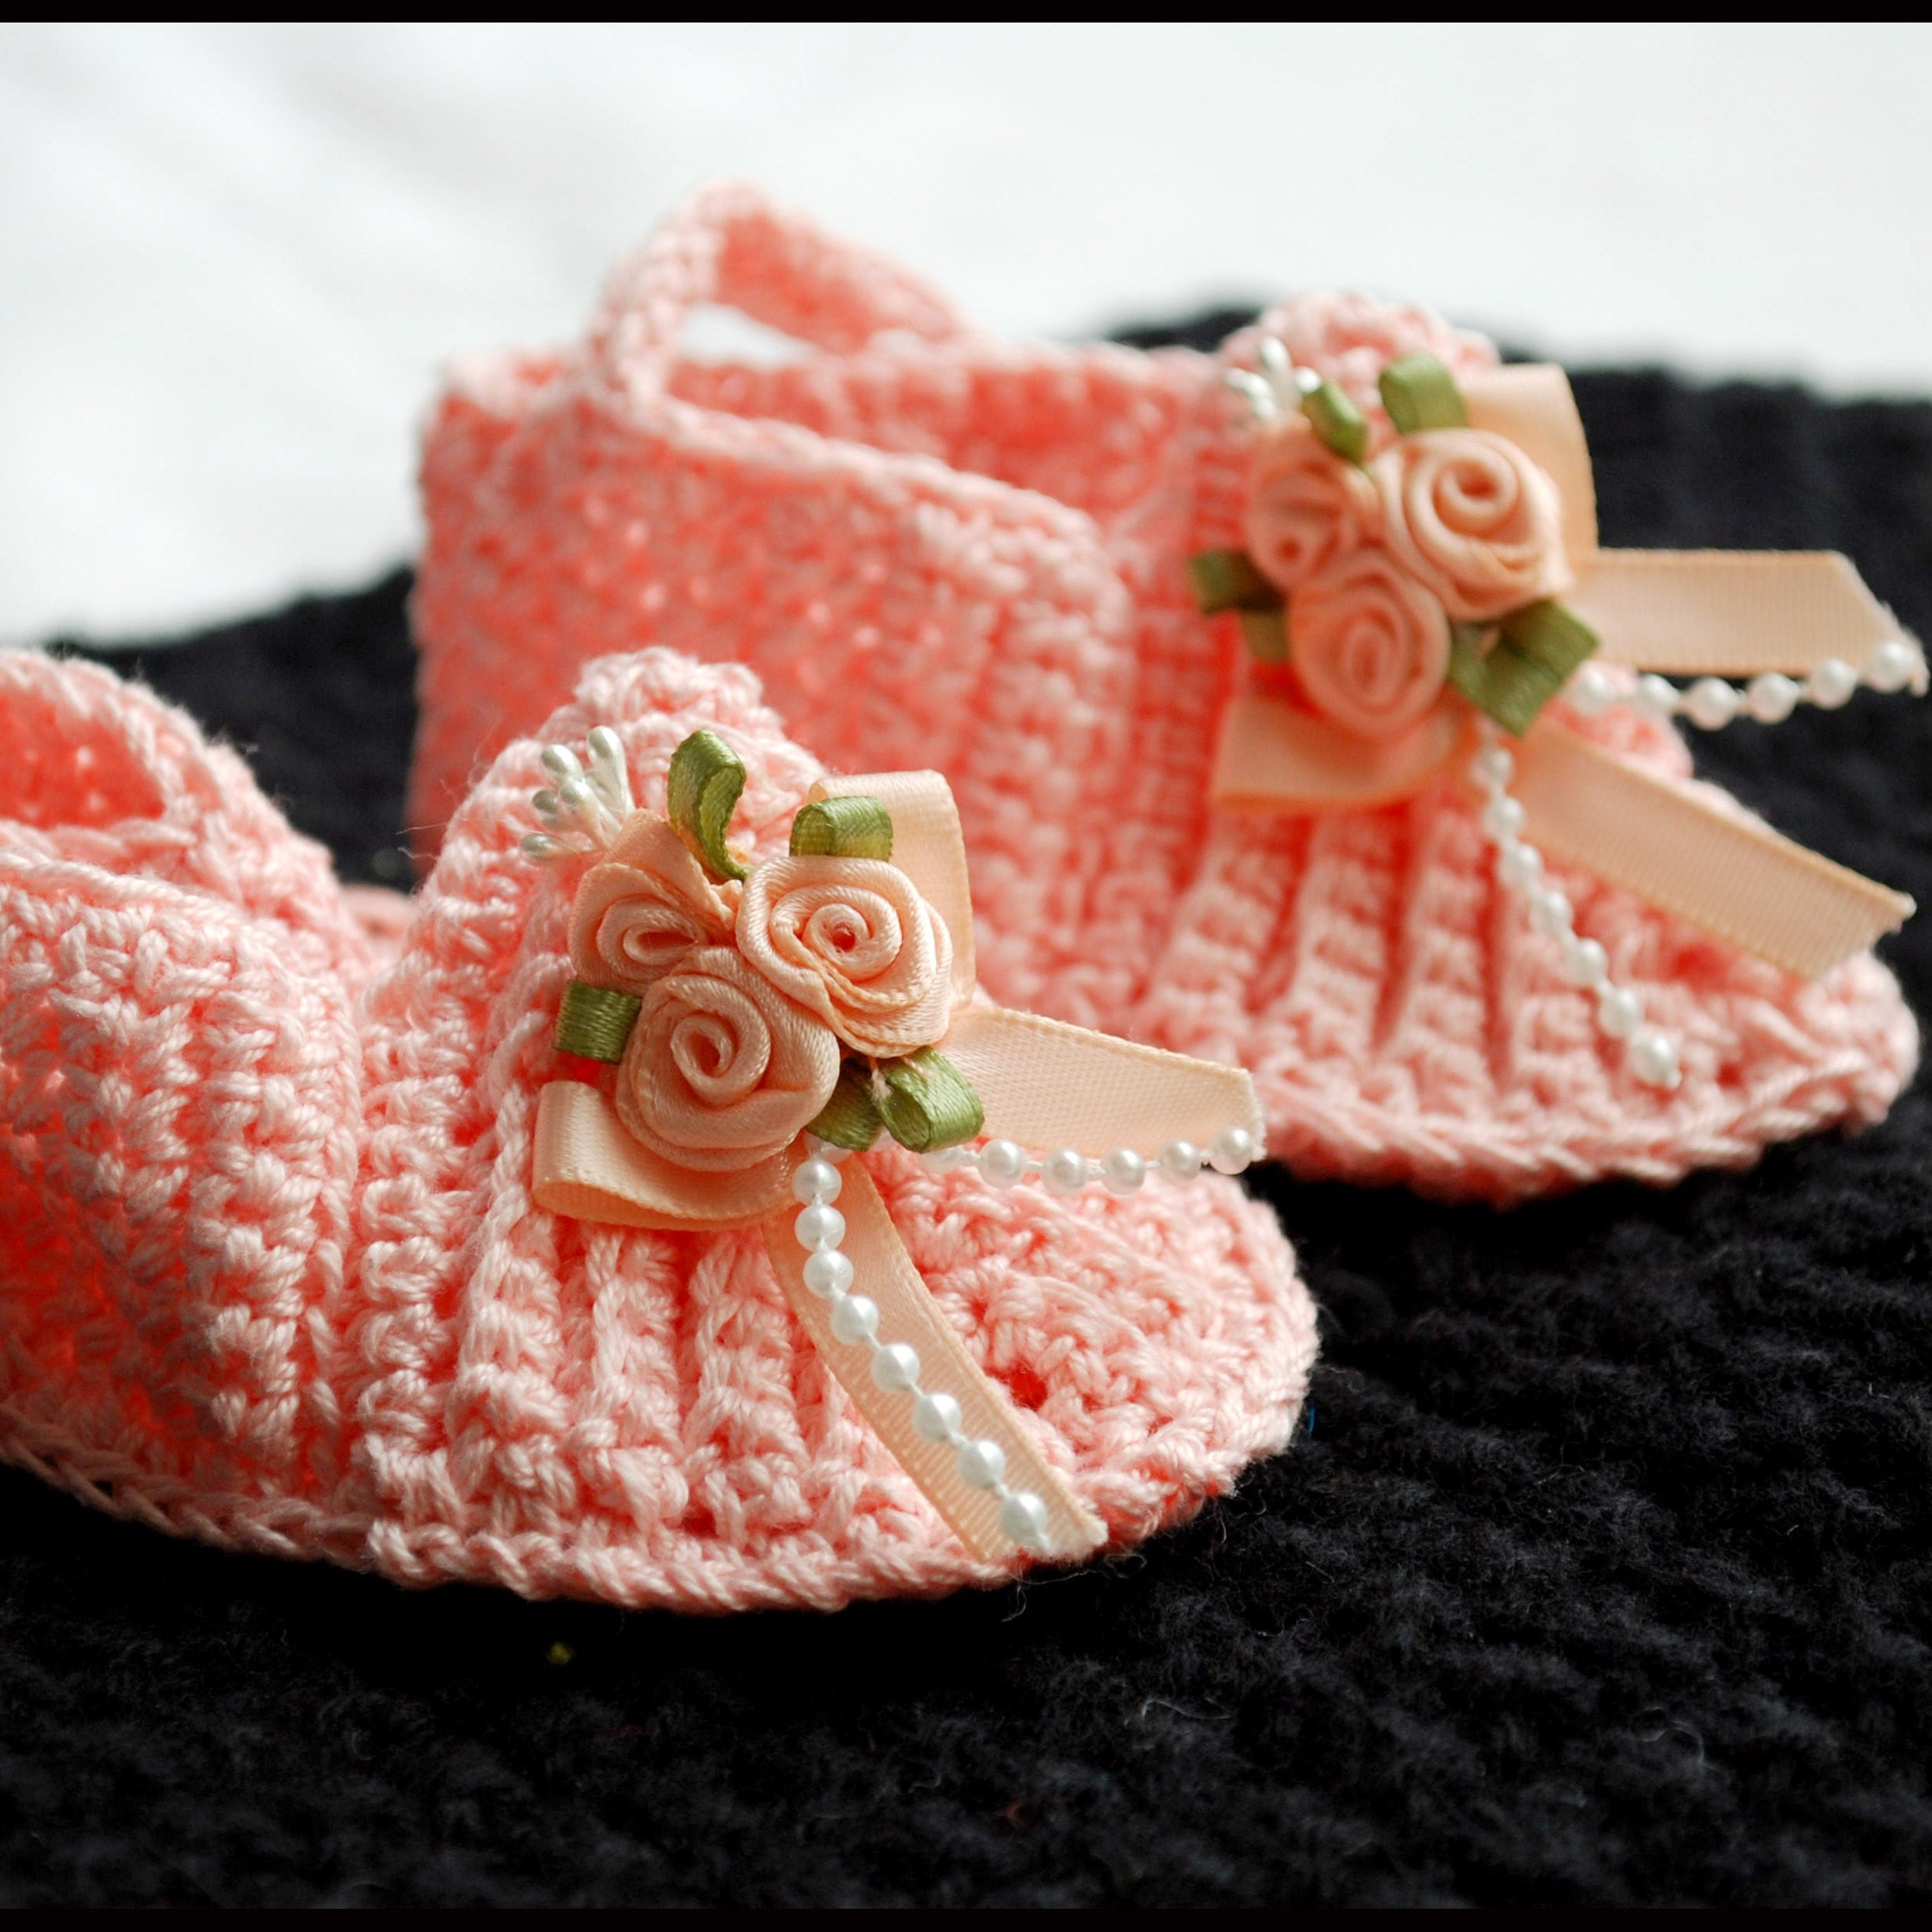 StitchedBewitched - Treasure magical crochet moments